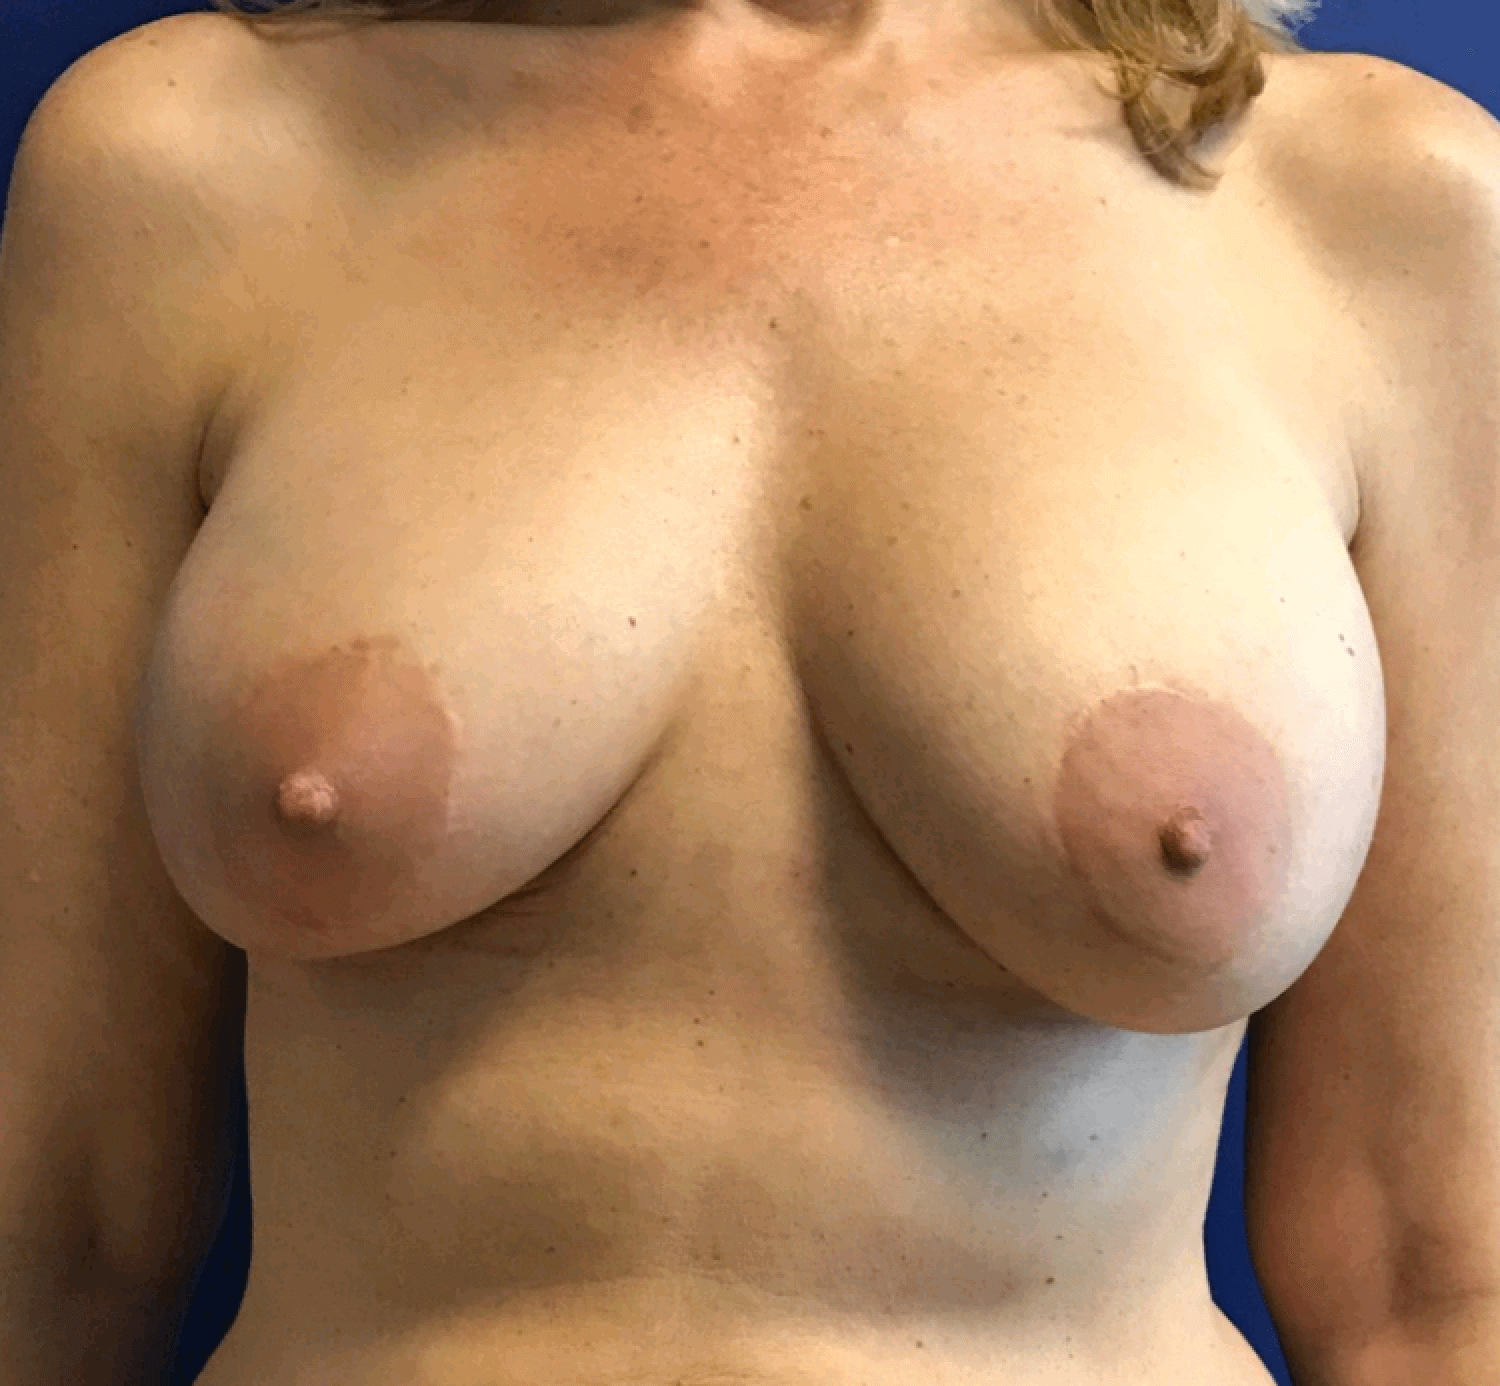 Breast implant rupture. After